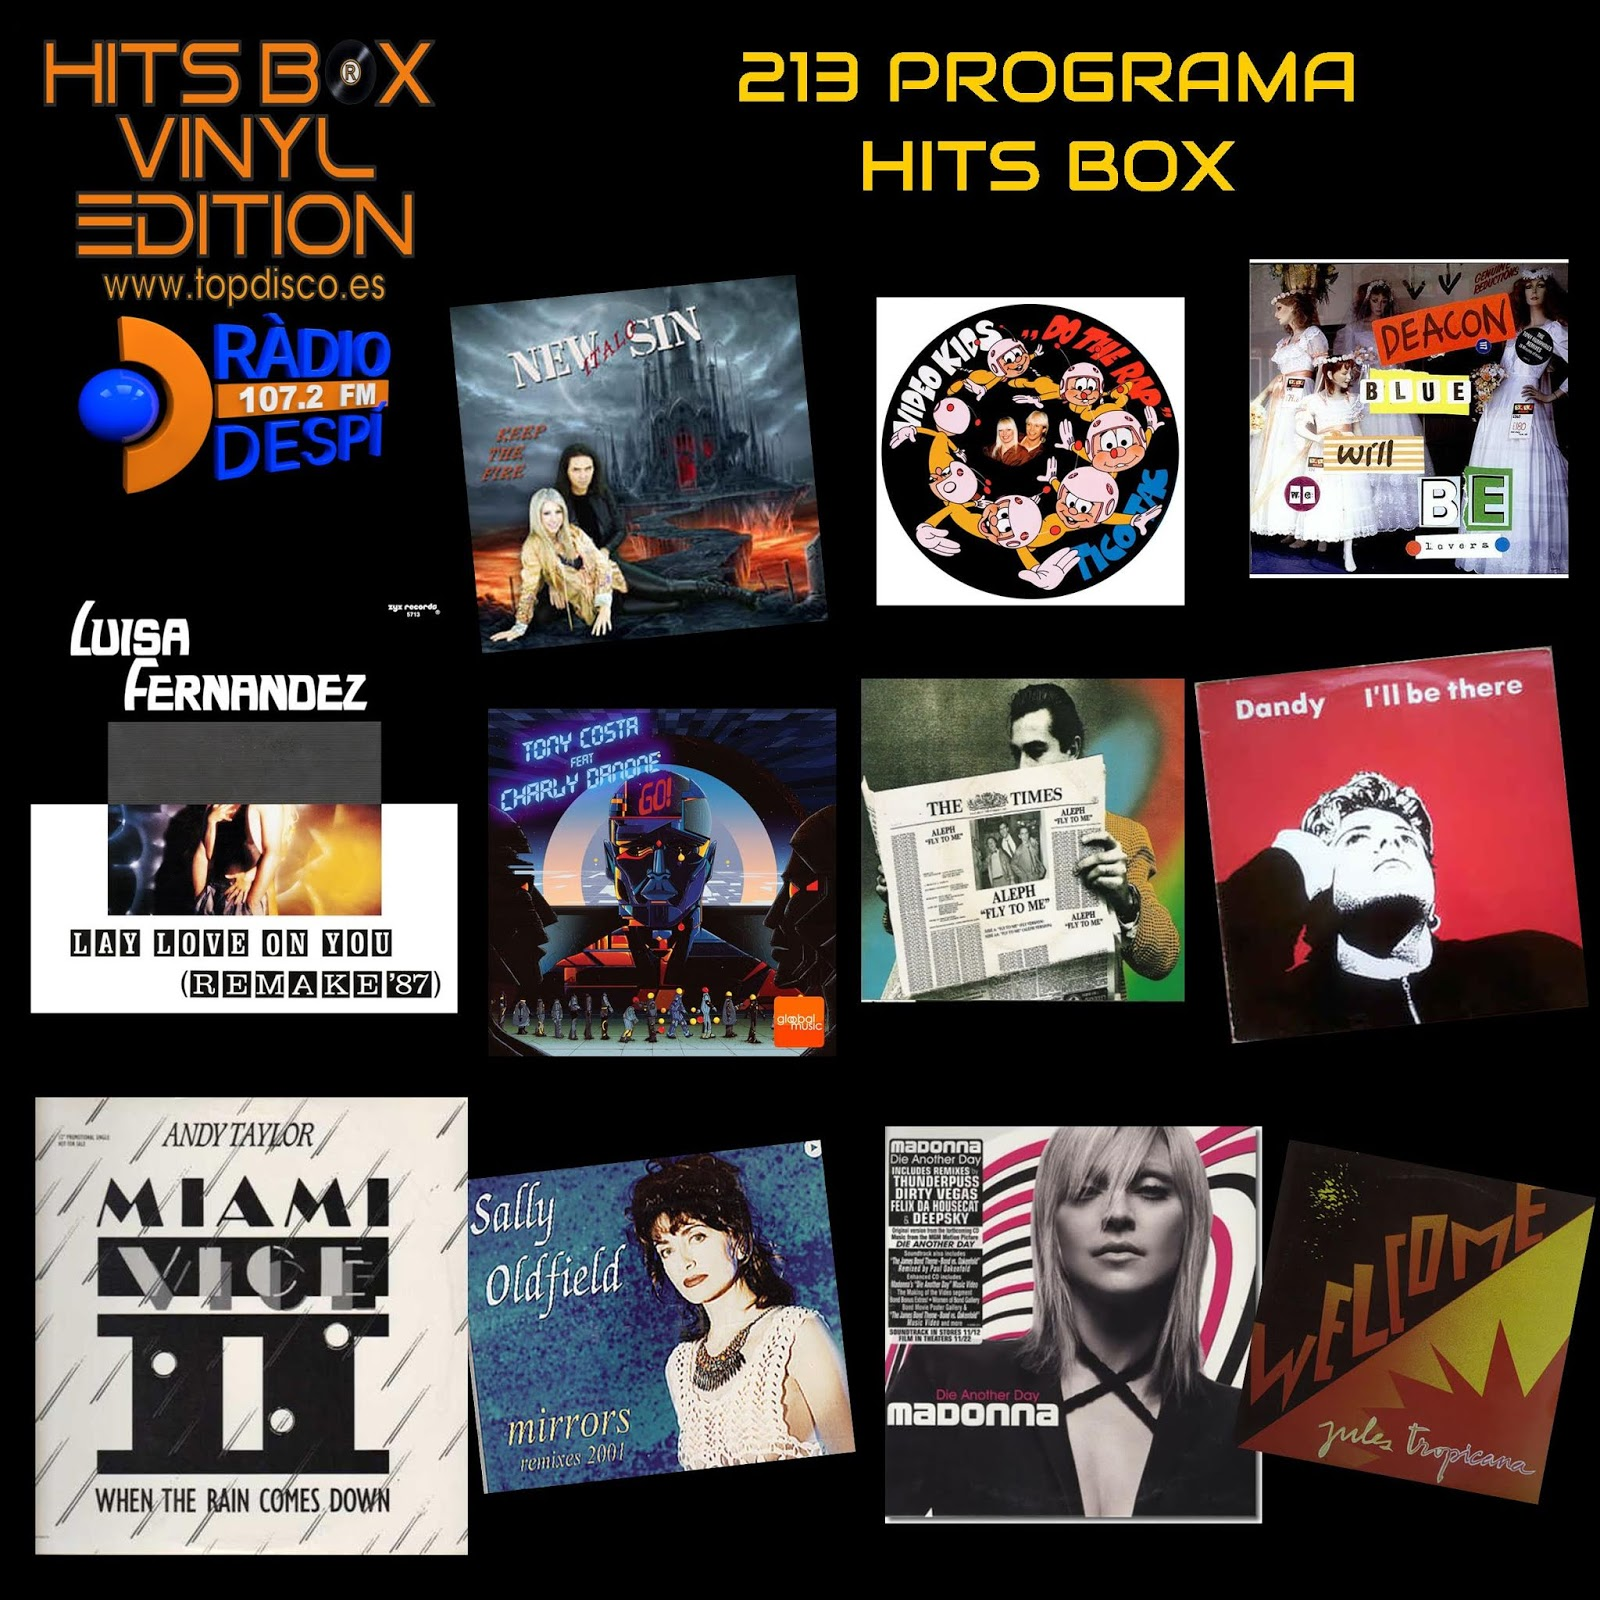 Redifusion 213 Programa Hits Box